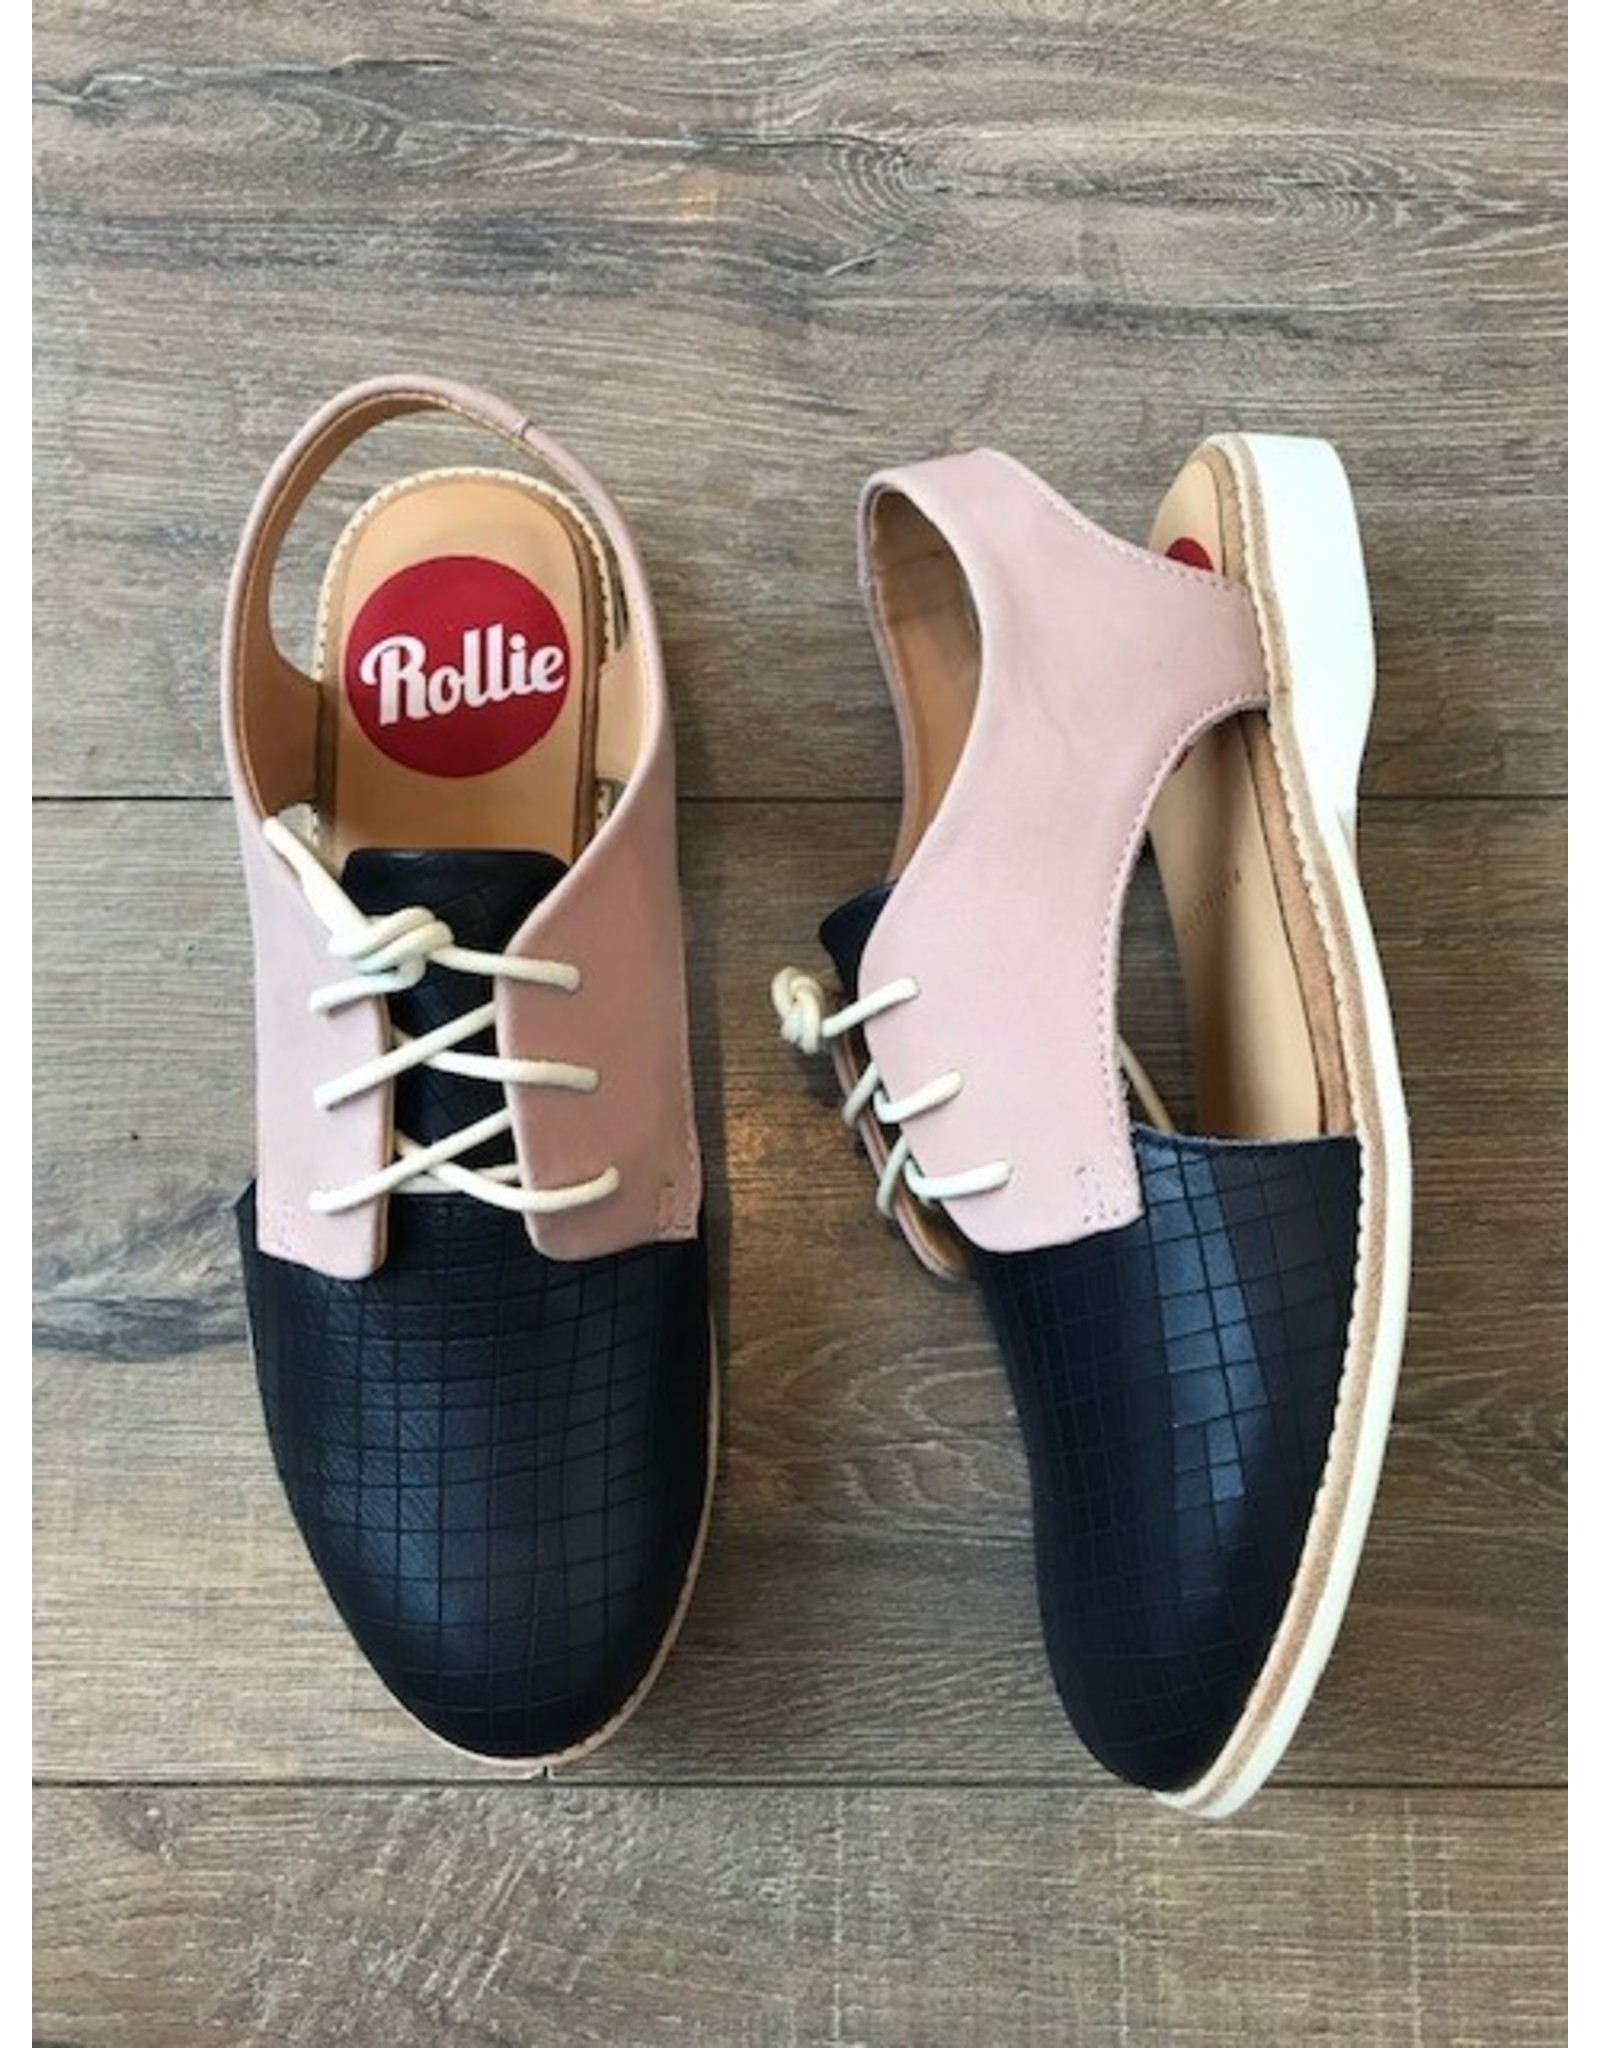 Rollie Shoes Rollie - Slingback (Navy scored / snow pink)